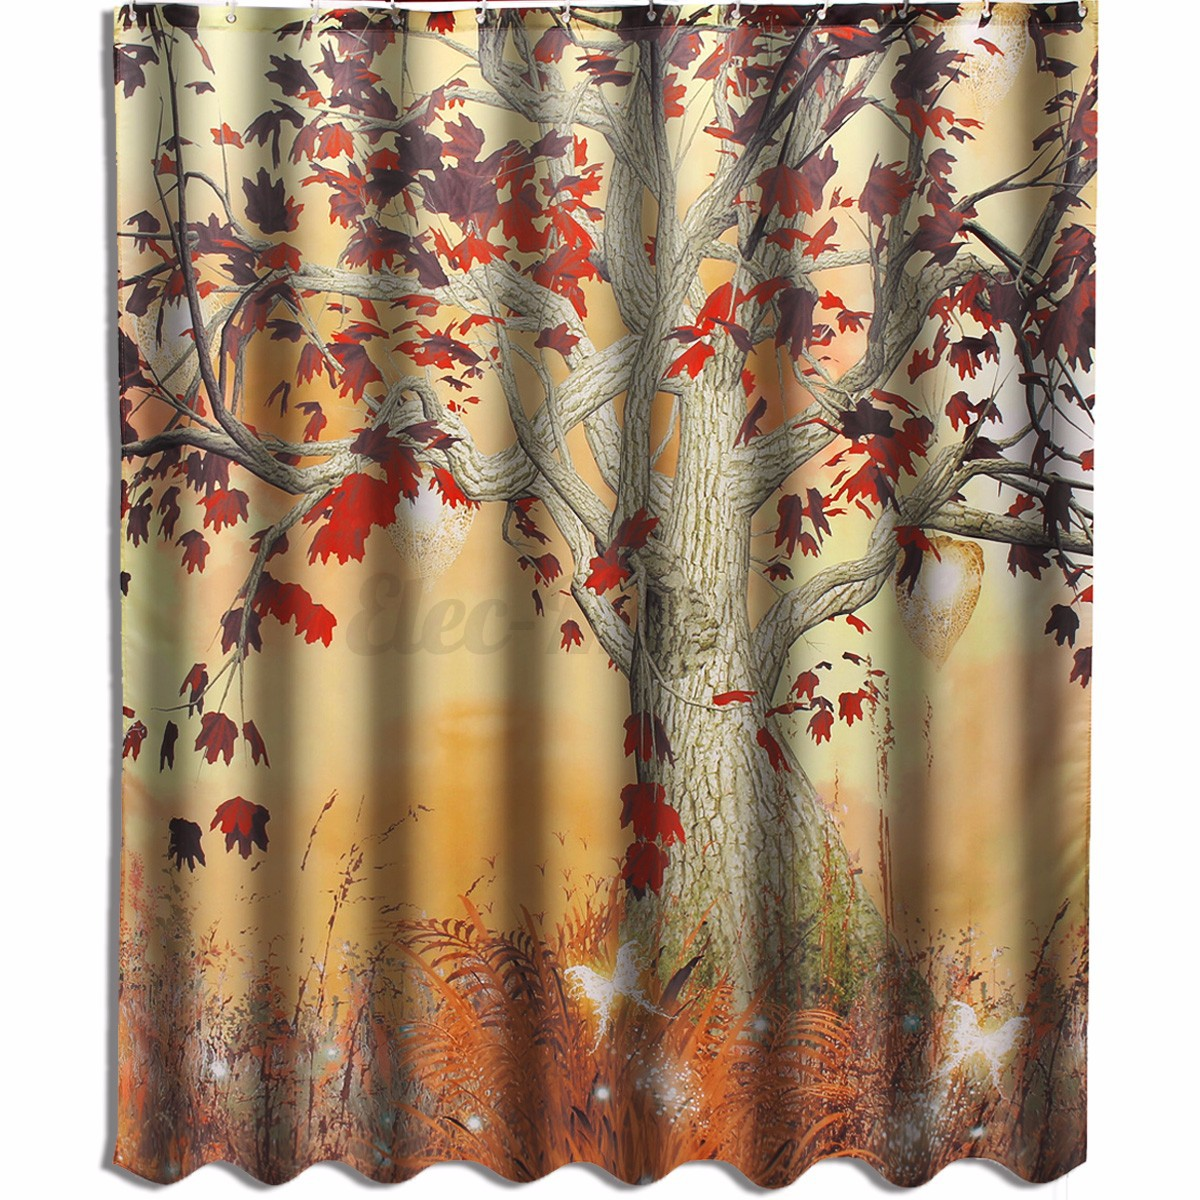 Old Twisted Tree Magical Butterflies Fabric SHOWER CURTAIN